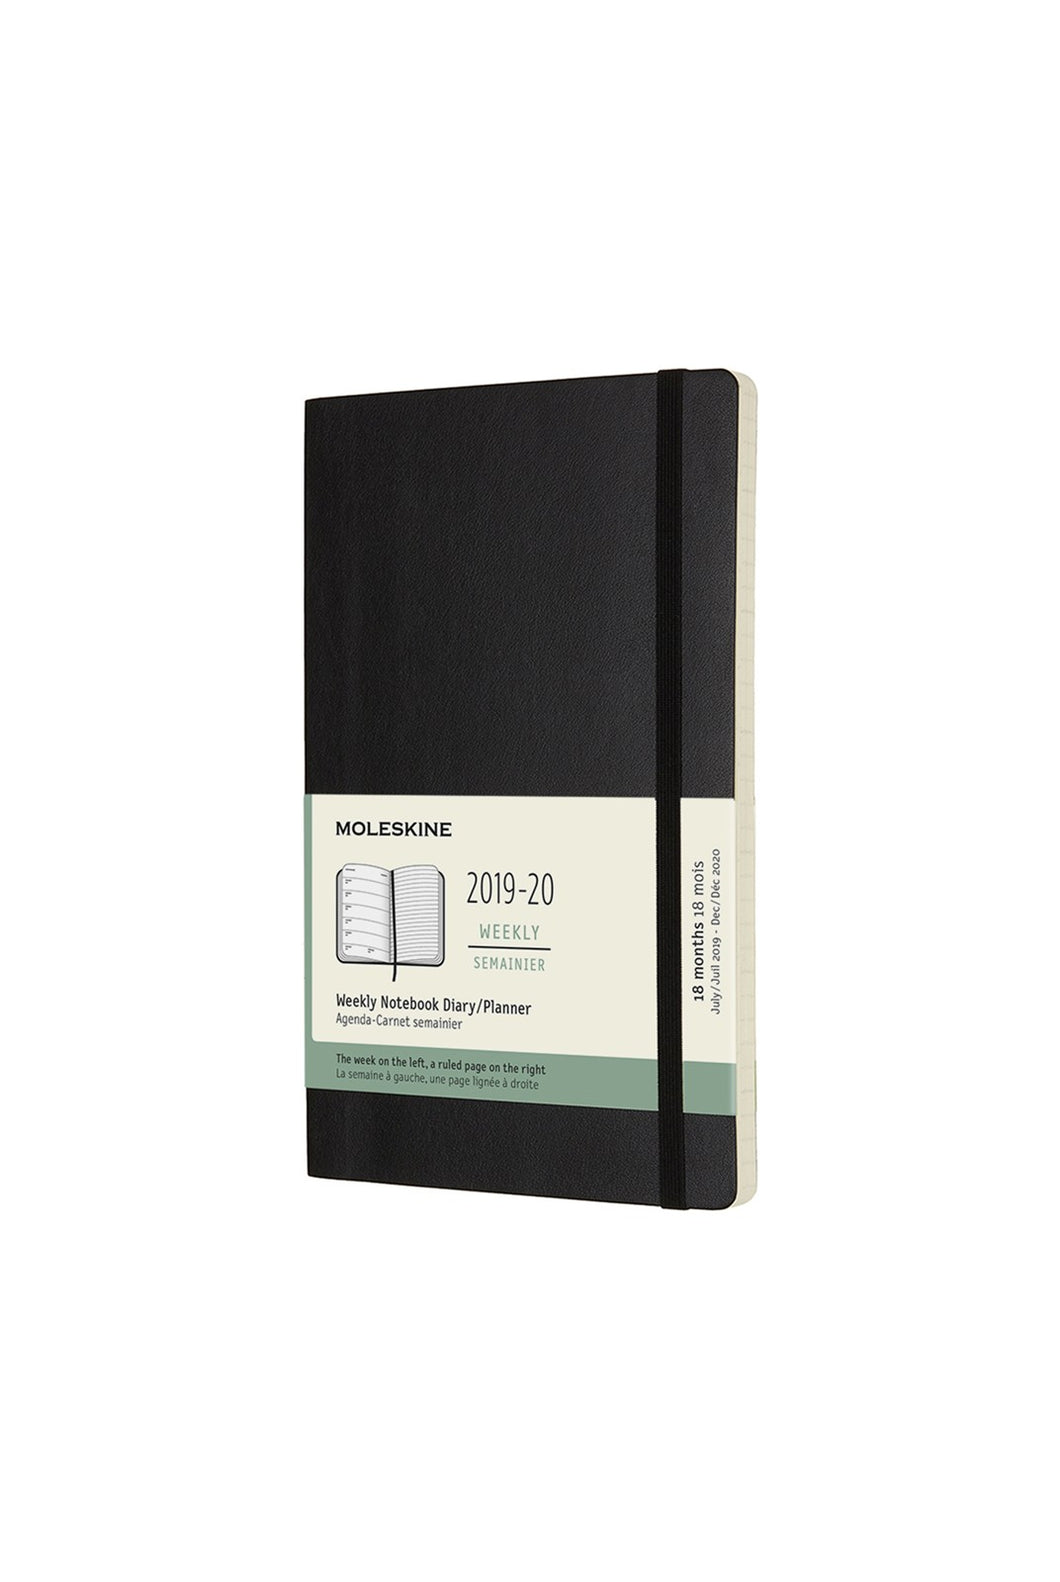 Moleskine - 2019-20 18 Month Diary - Weekly Notebook - Large (13x21cm) Soft Cover - Black